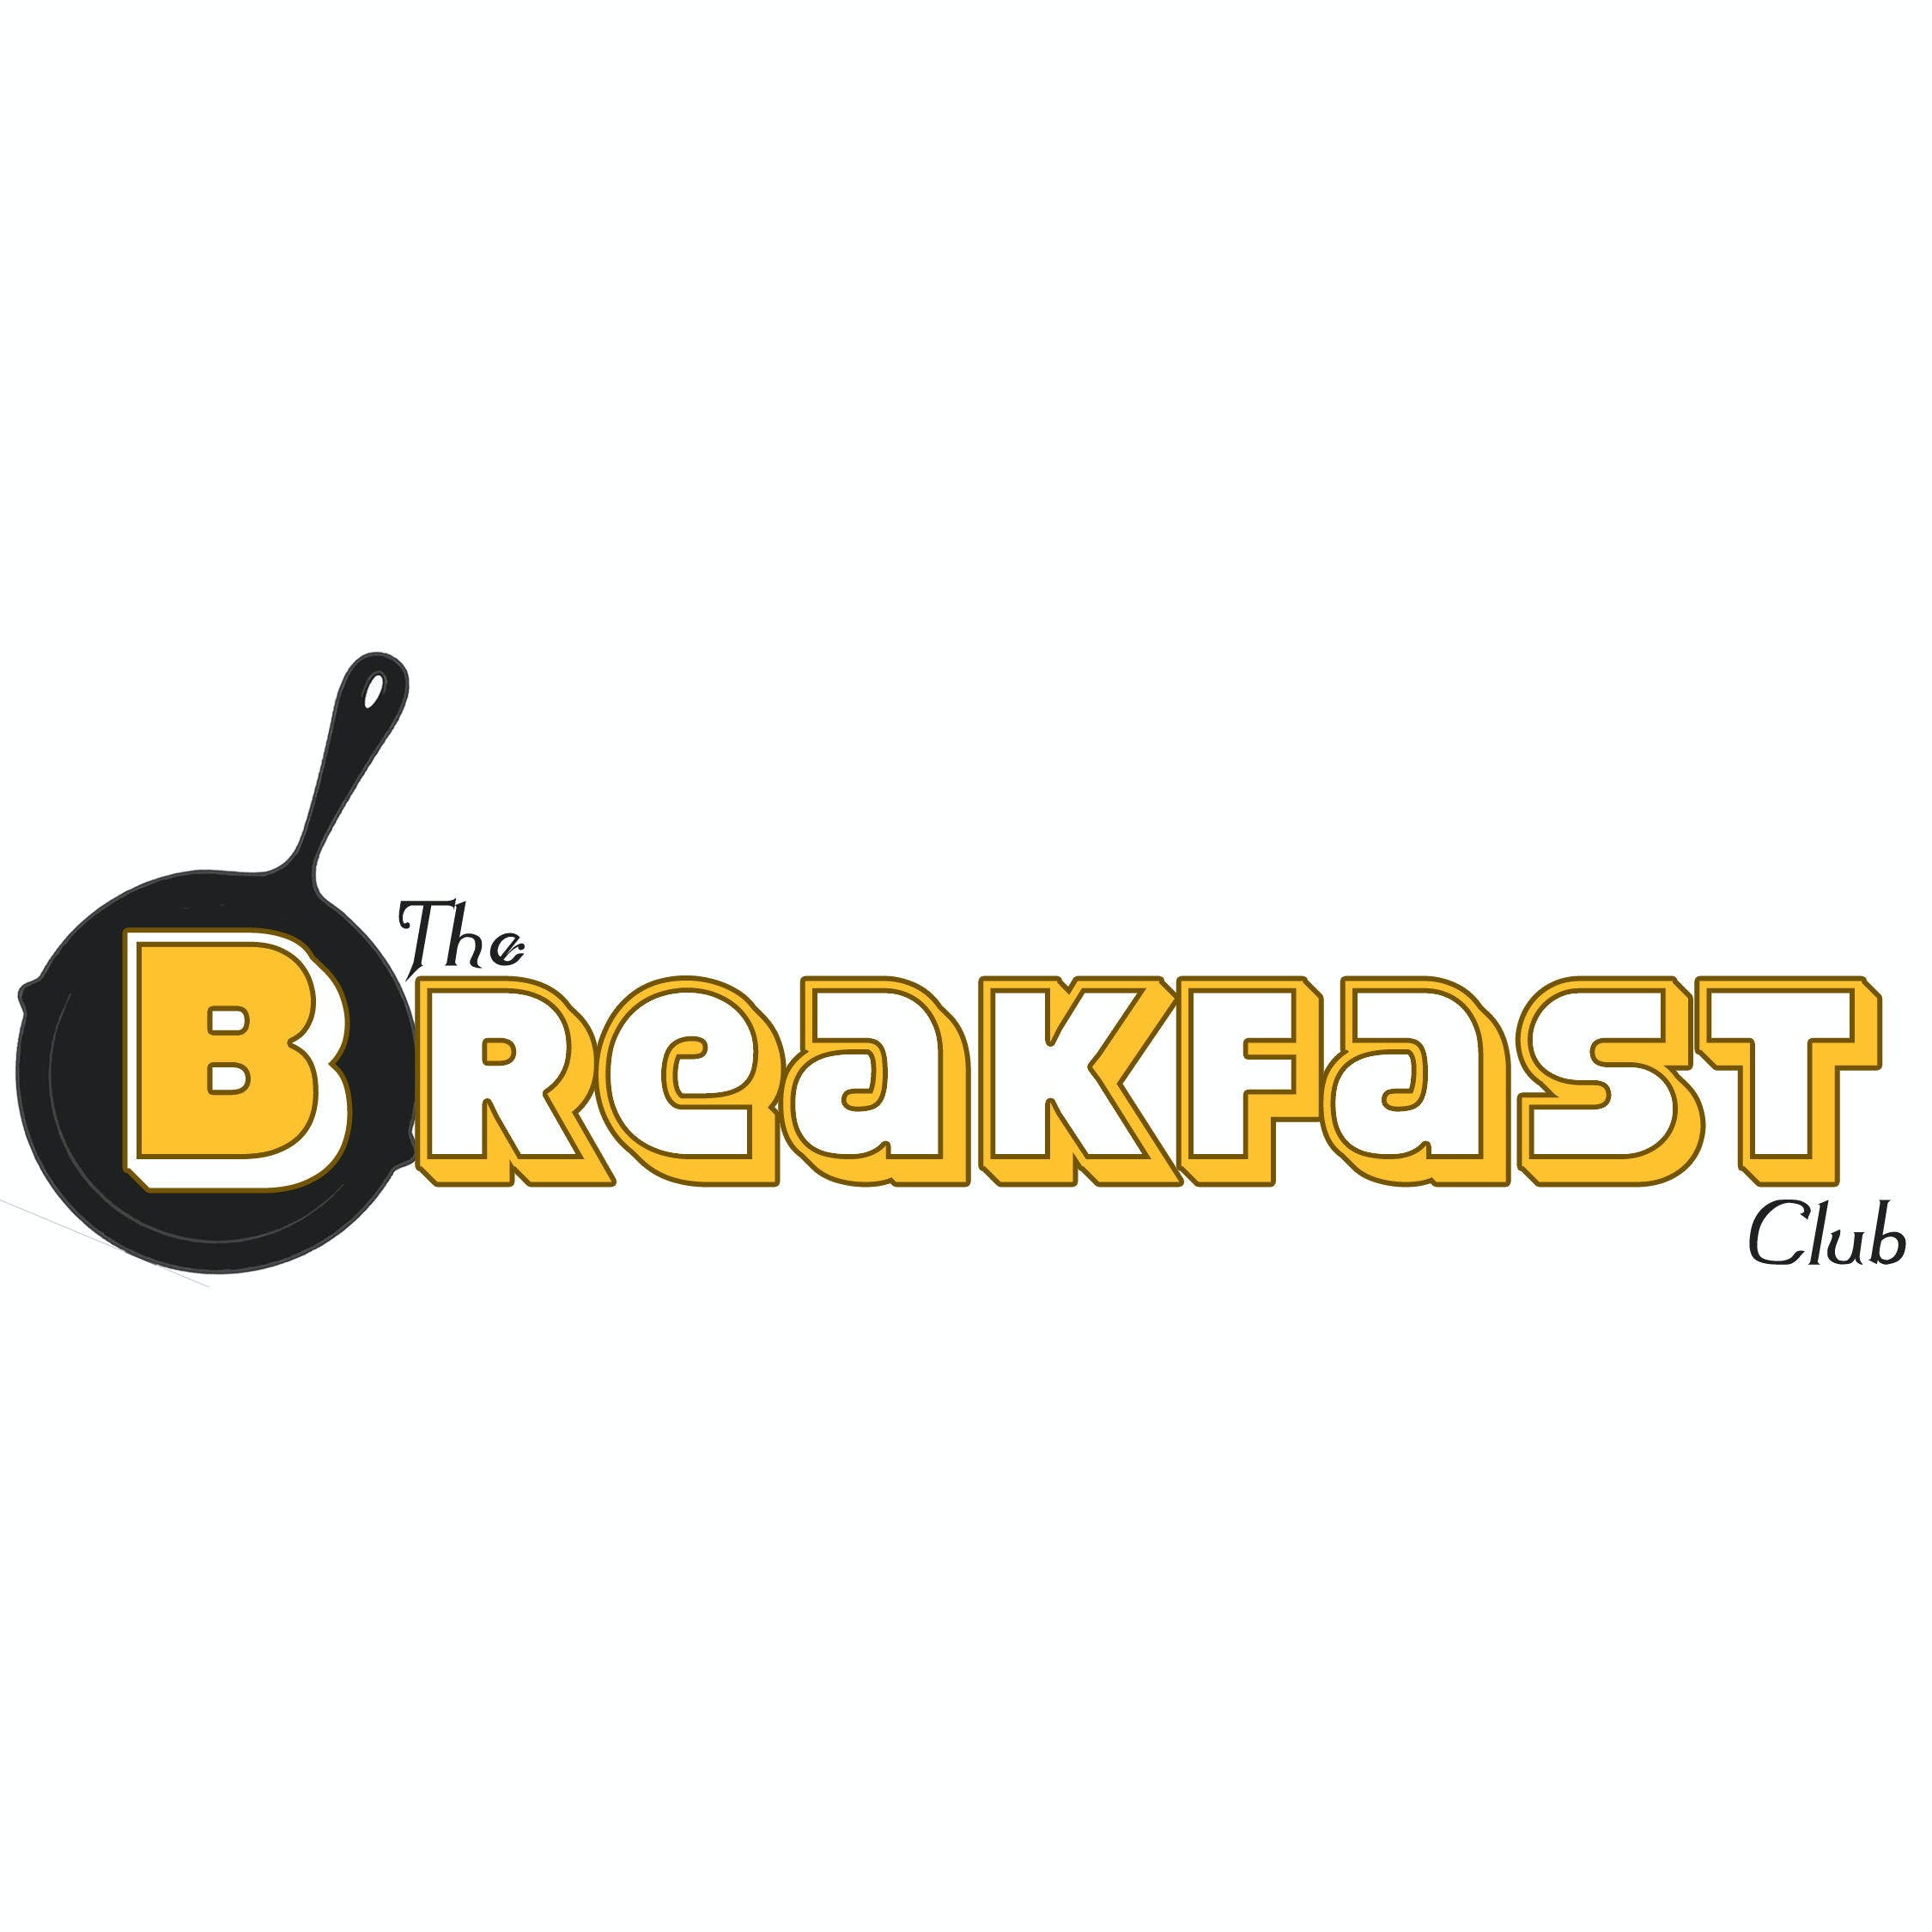 The Breakfast Club - Brookfield Menu and Delivery in Brookfield WI, 53005